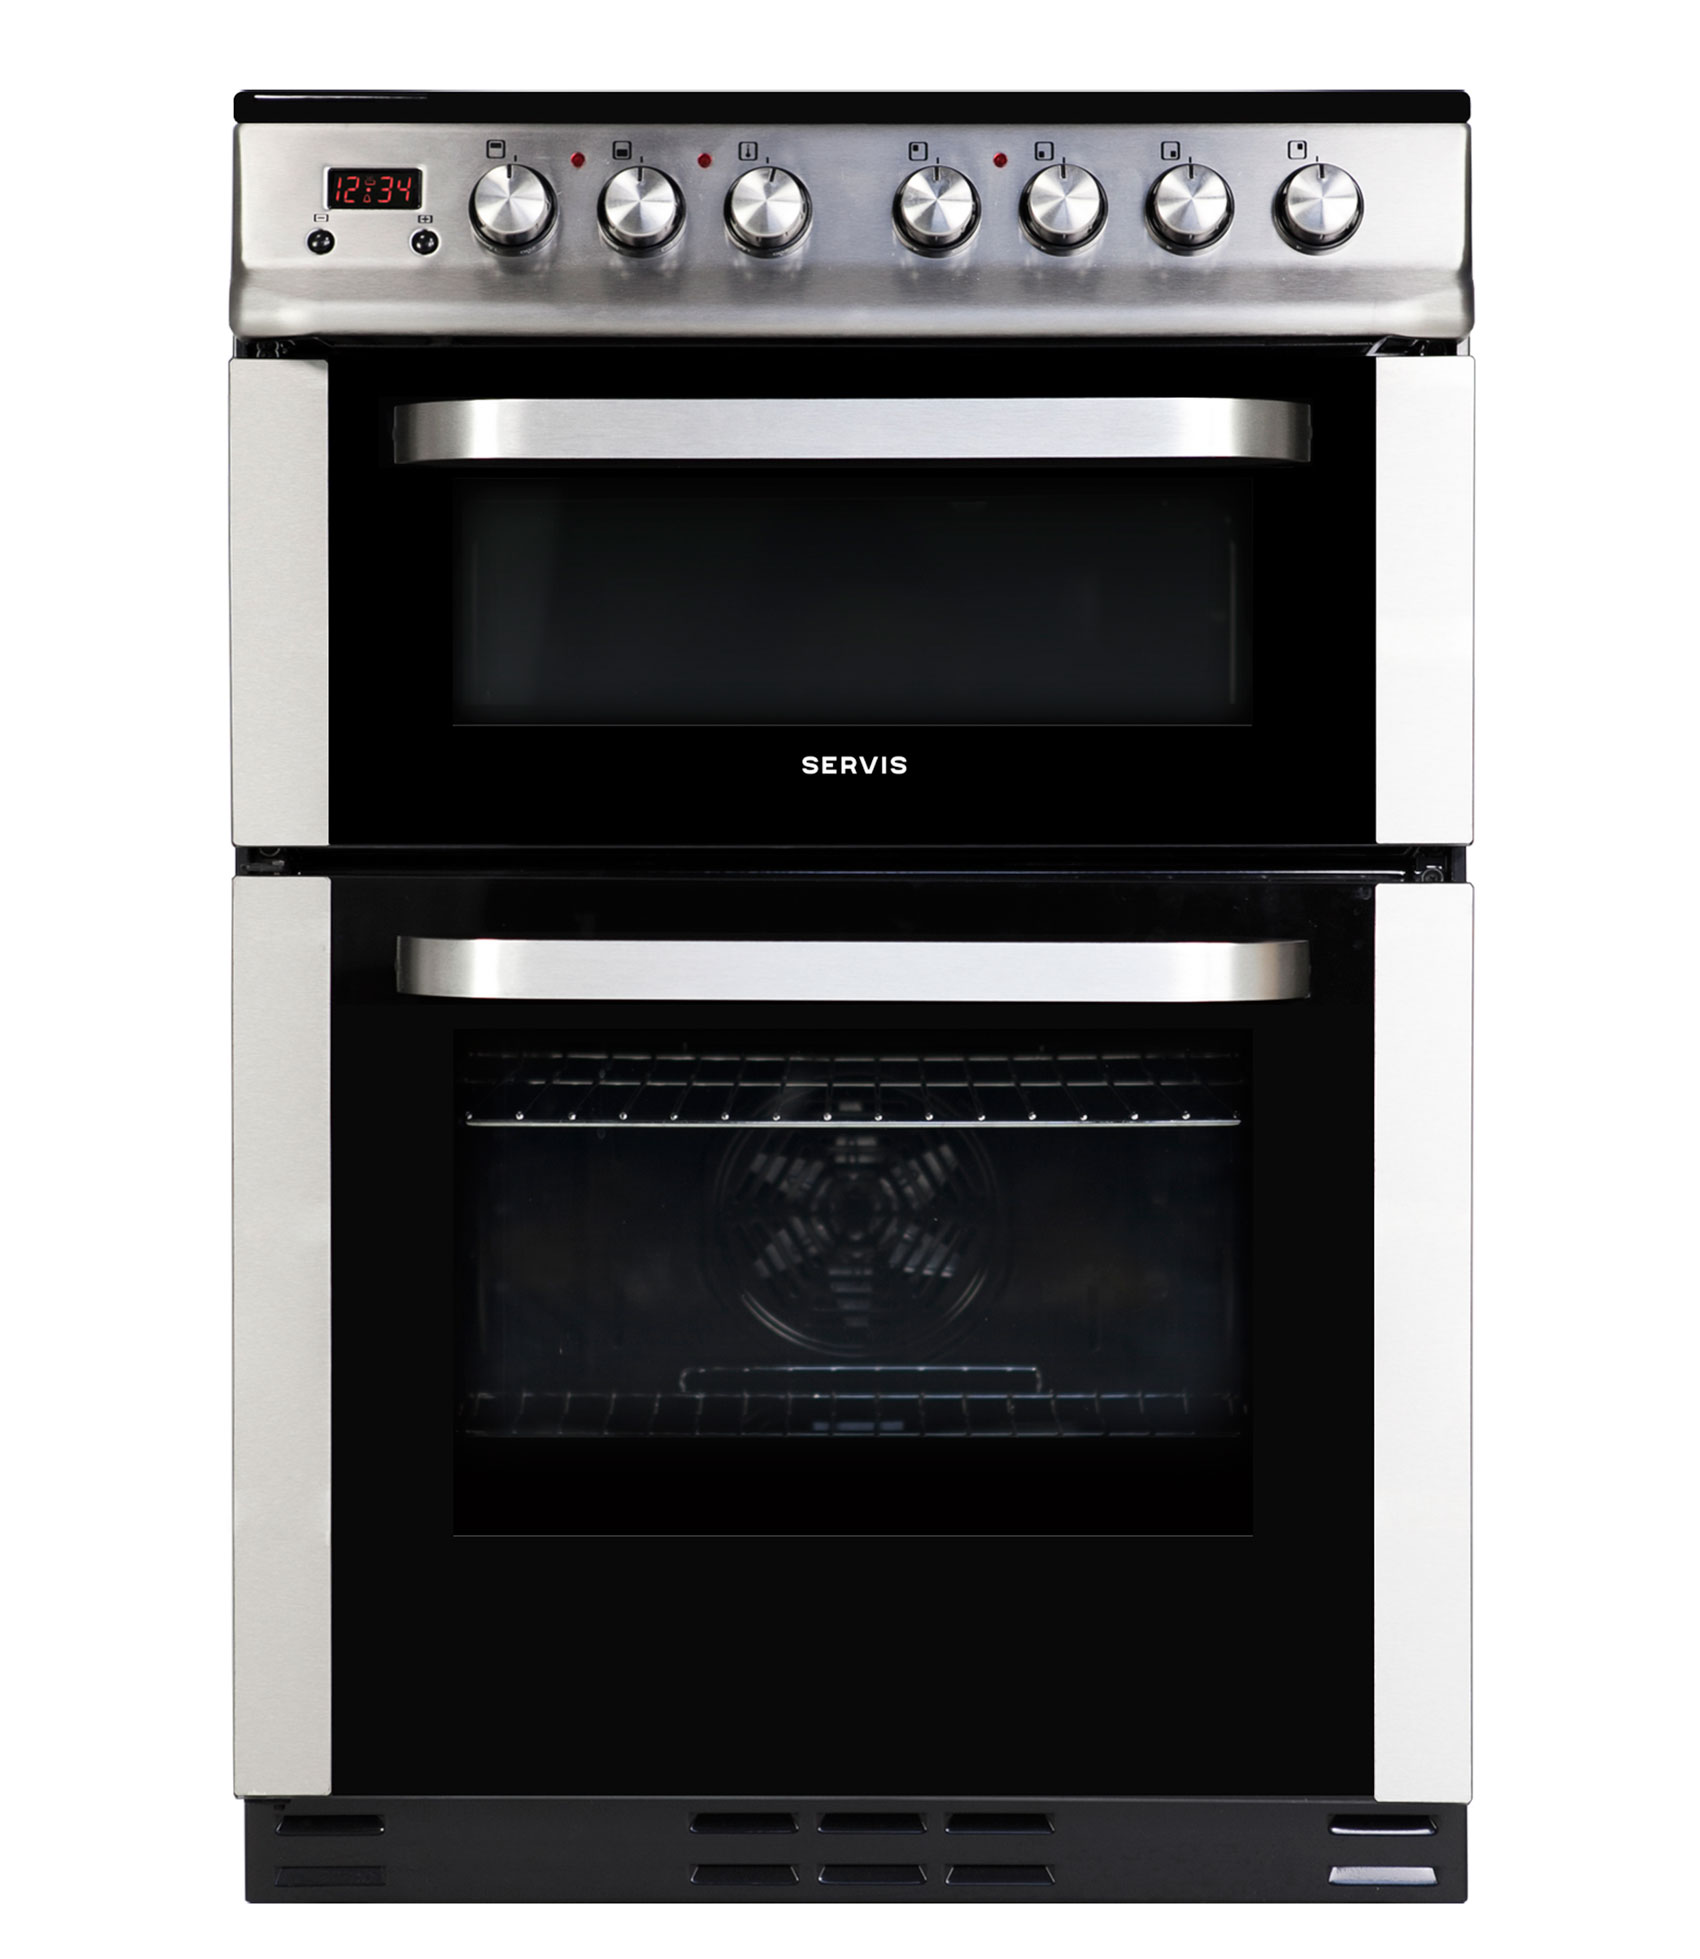 DC60SS - Stainless Steel - Electric Cooker